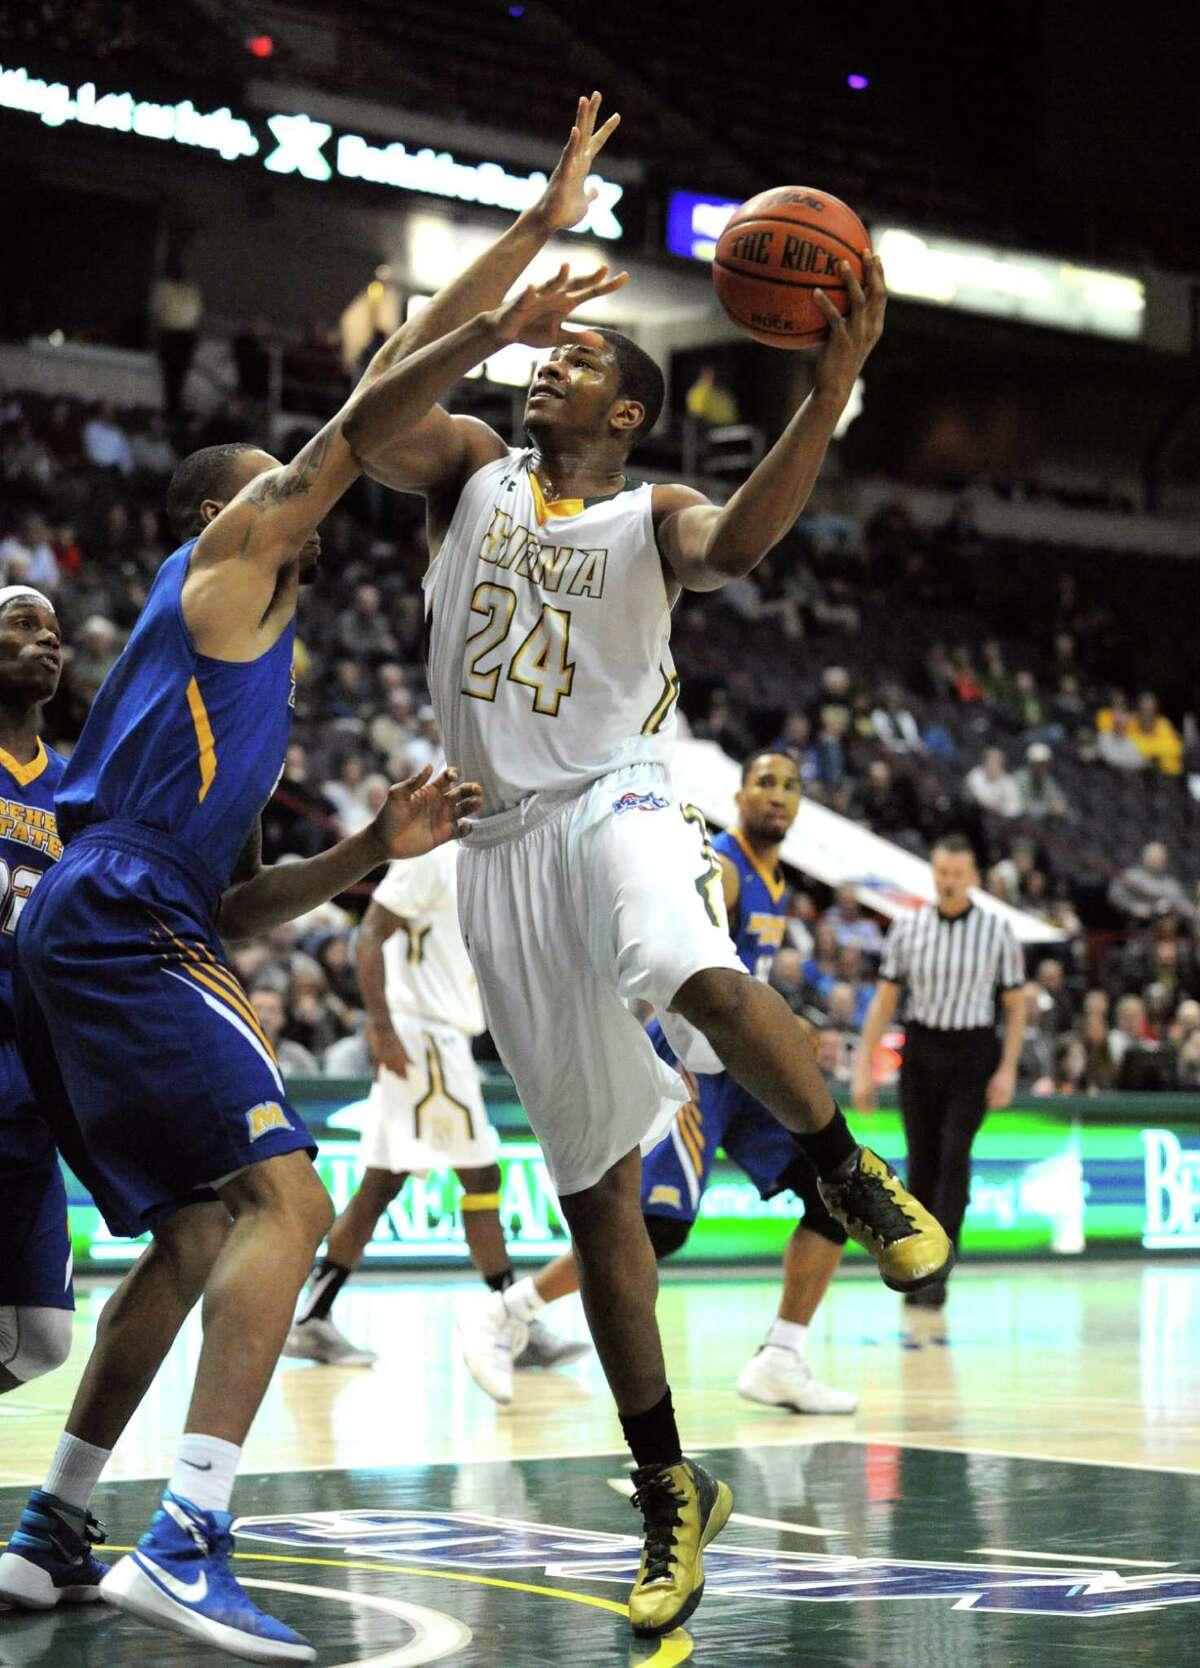 Siena's Lavon Long drives to the basket during their first round game of the College Basketball Invitational against Morehead State at the Times Union Center on Tuesday March 15, 2016 in Albany, N.Y. (Michael P. Farrell/Times Union)